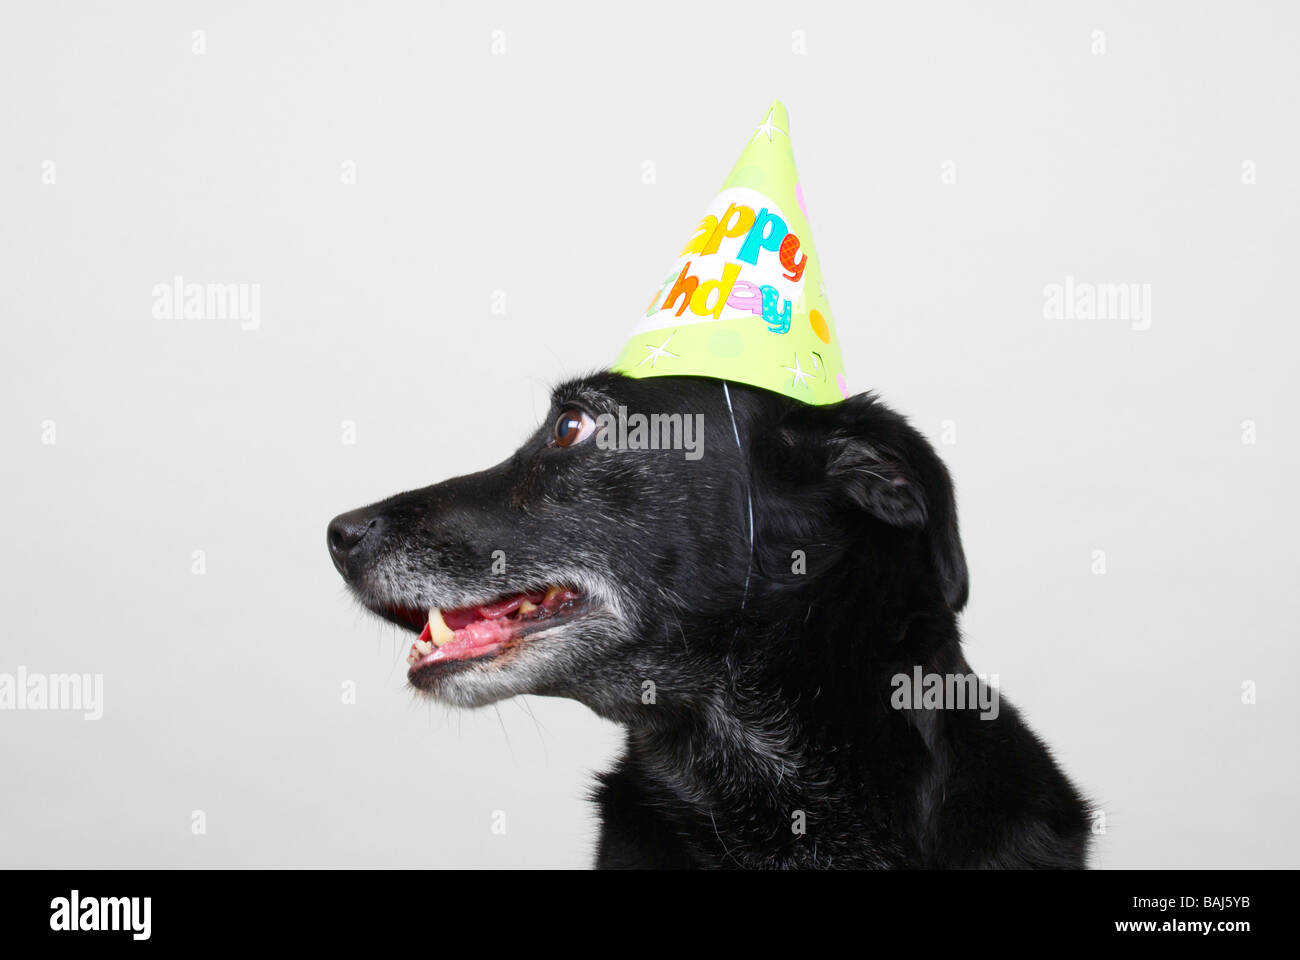 Black Dog Wearing Happy Birthday Party Hat